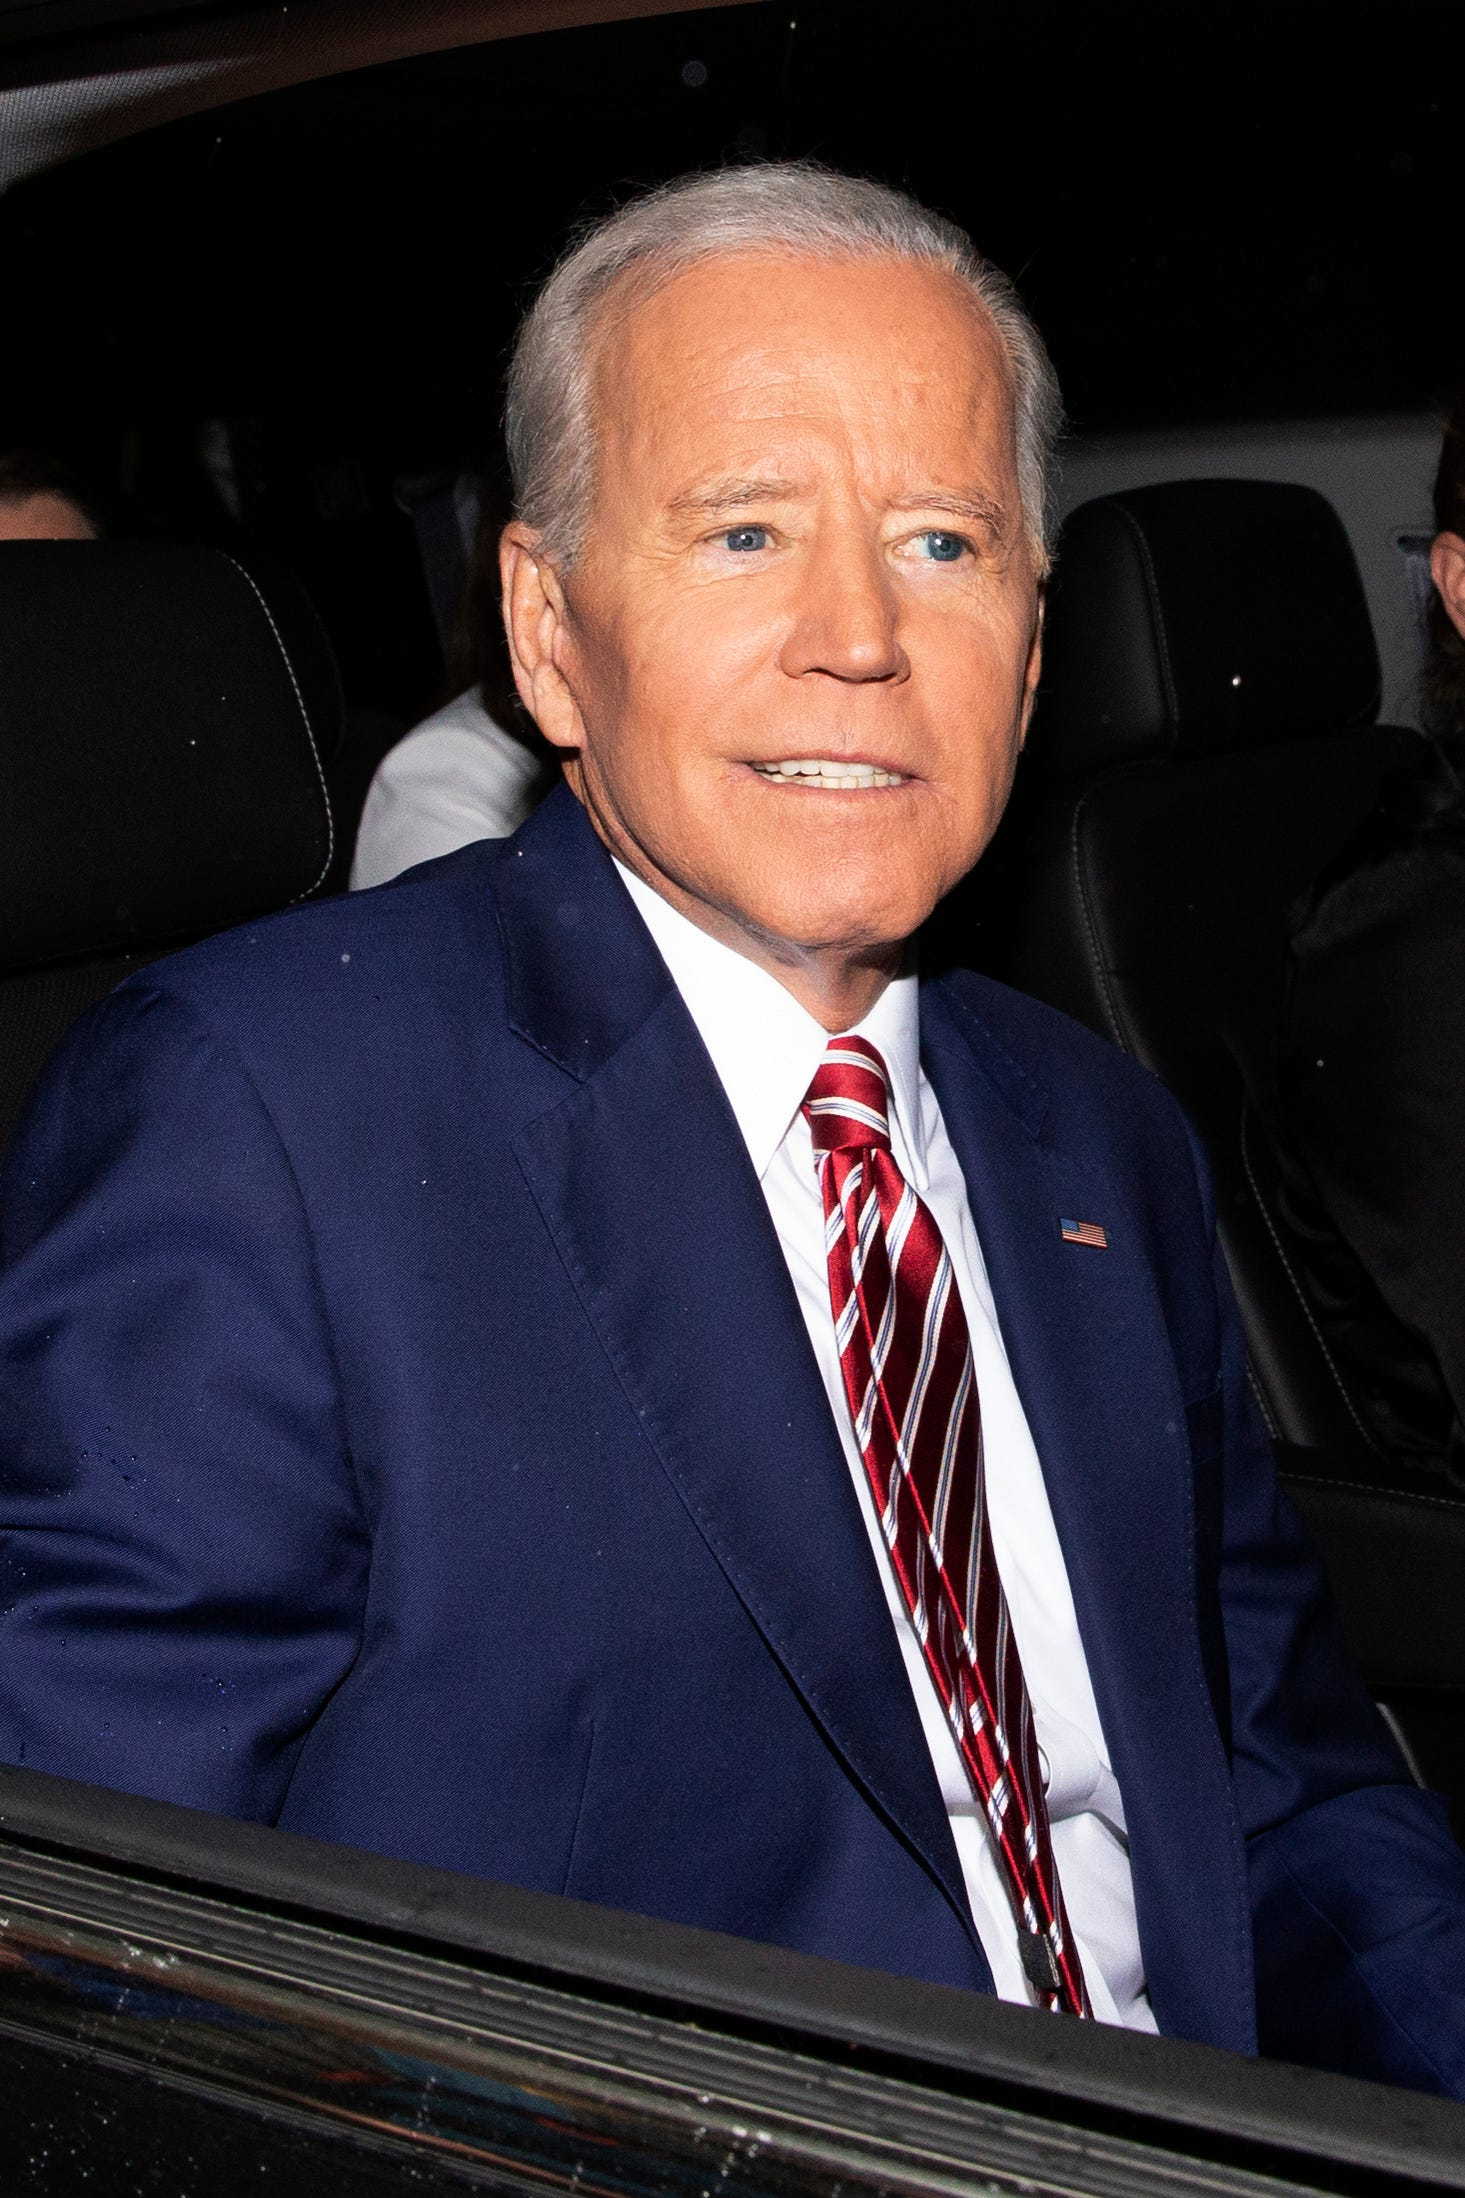 Joe Biden, 76, says he has no plans to limit himself to one-term in the White House